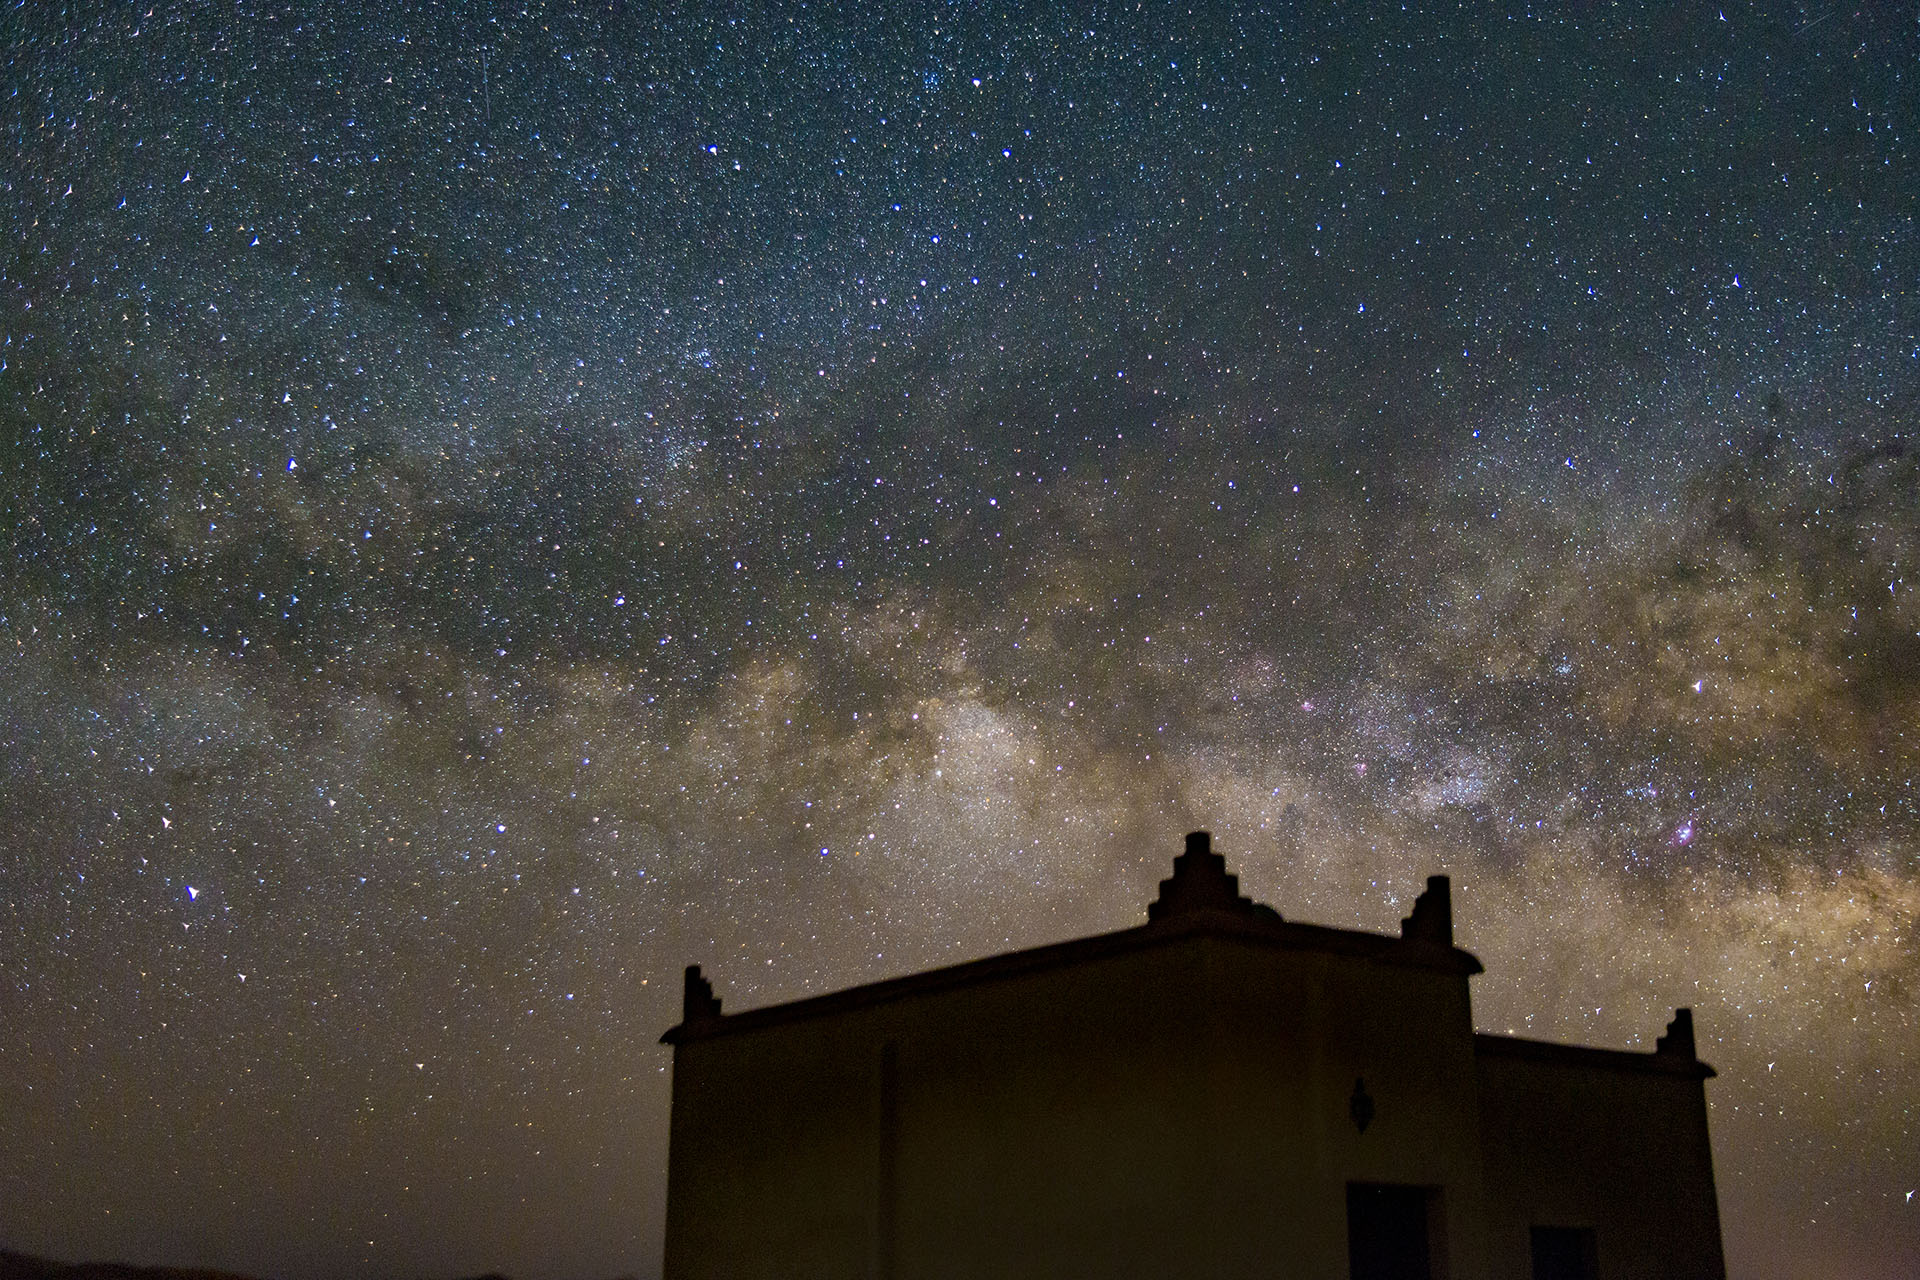 About Riad Da Hassan - Milky way over the riad - photo by Ezyê Moleda all rights reserved